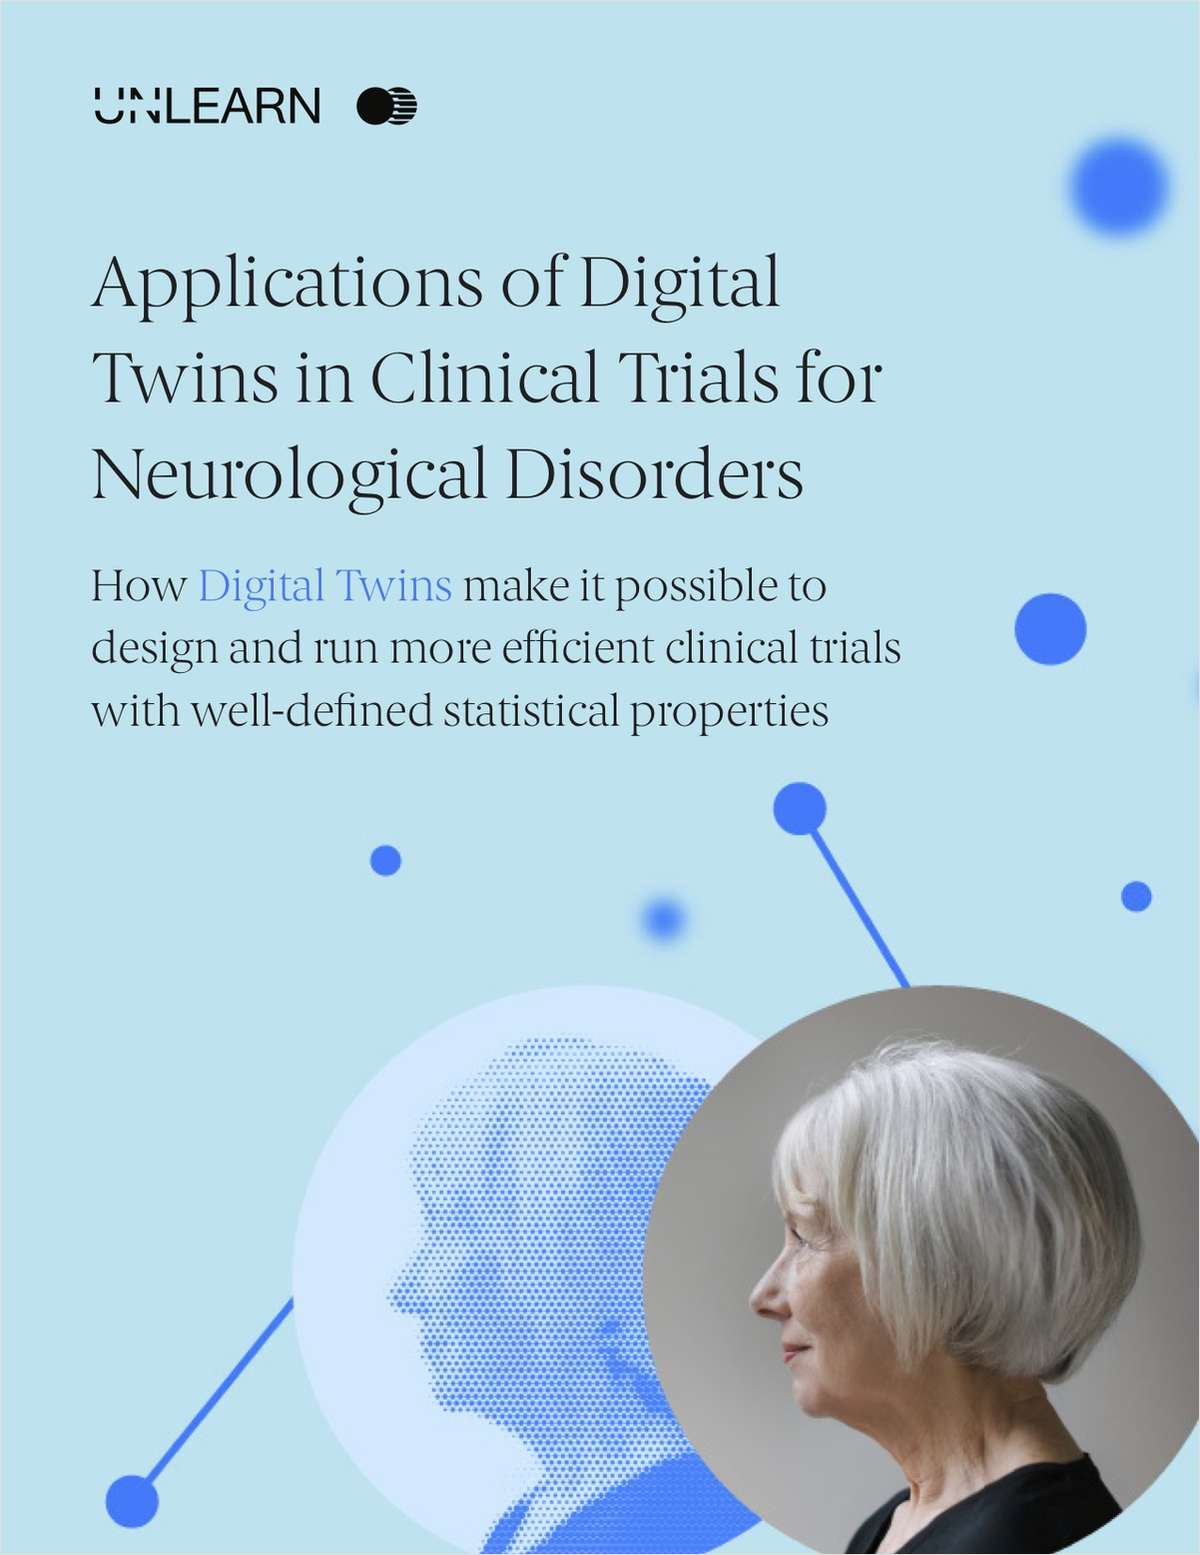 Applications of Digital Twins in Clinical Trials for Neurological Disorders